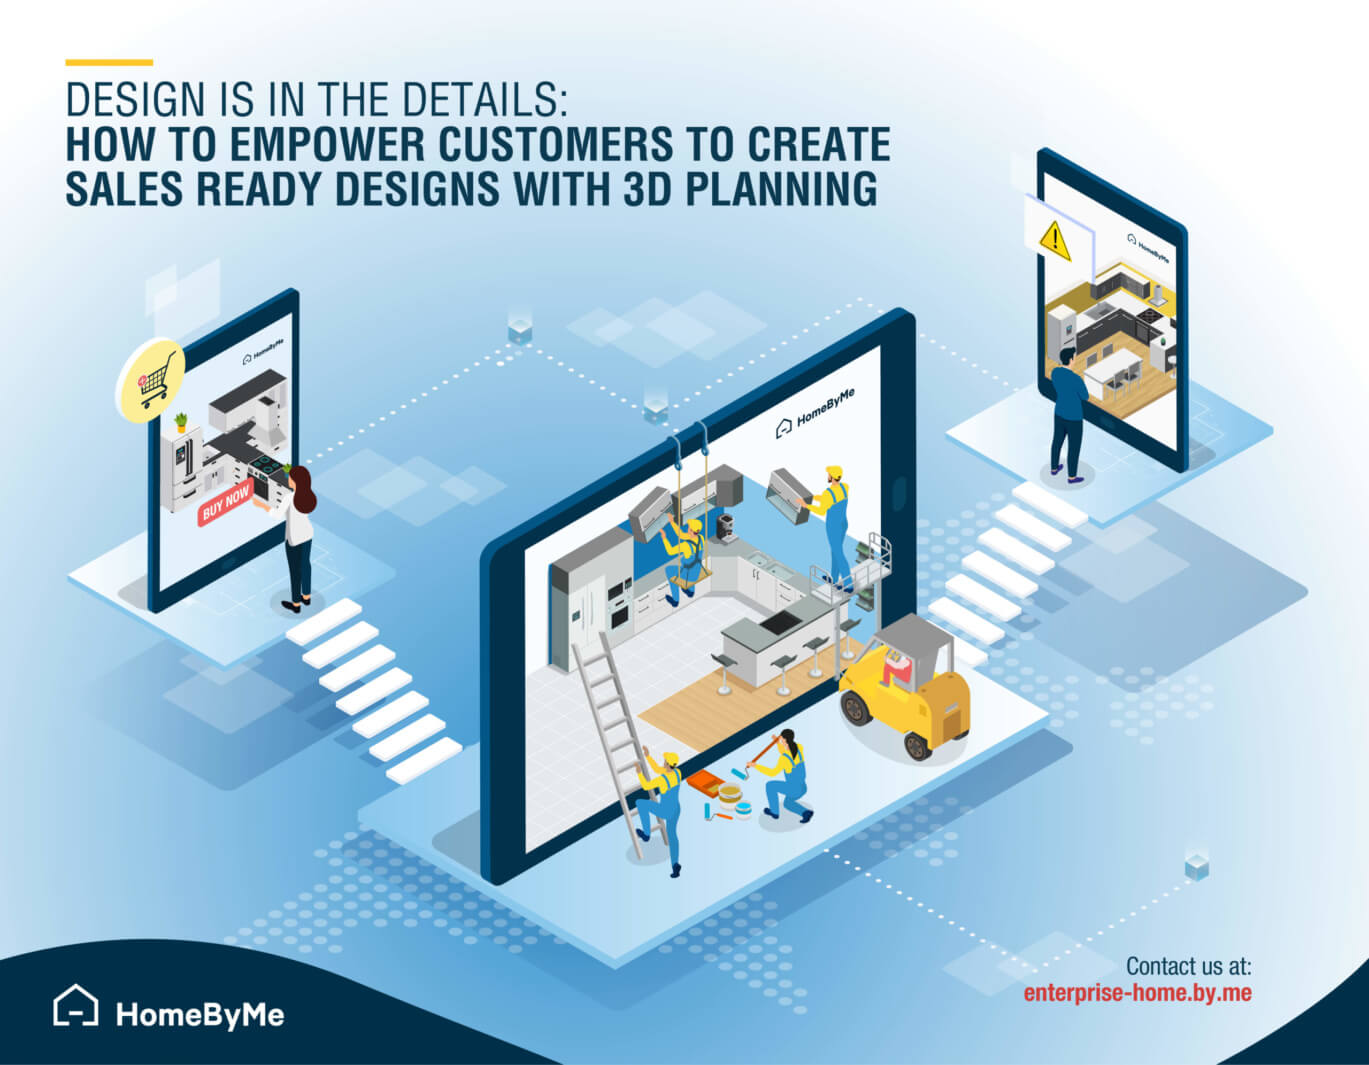 Empower your customers with a 3D planning solution